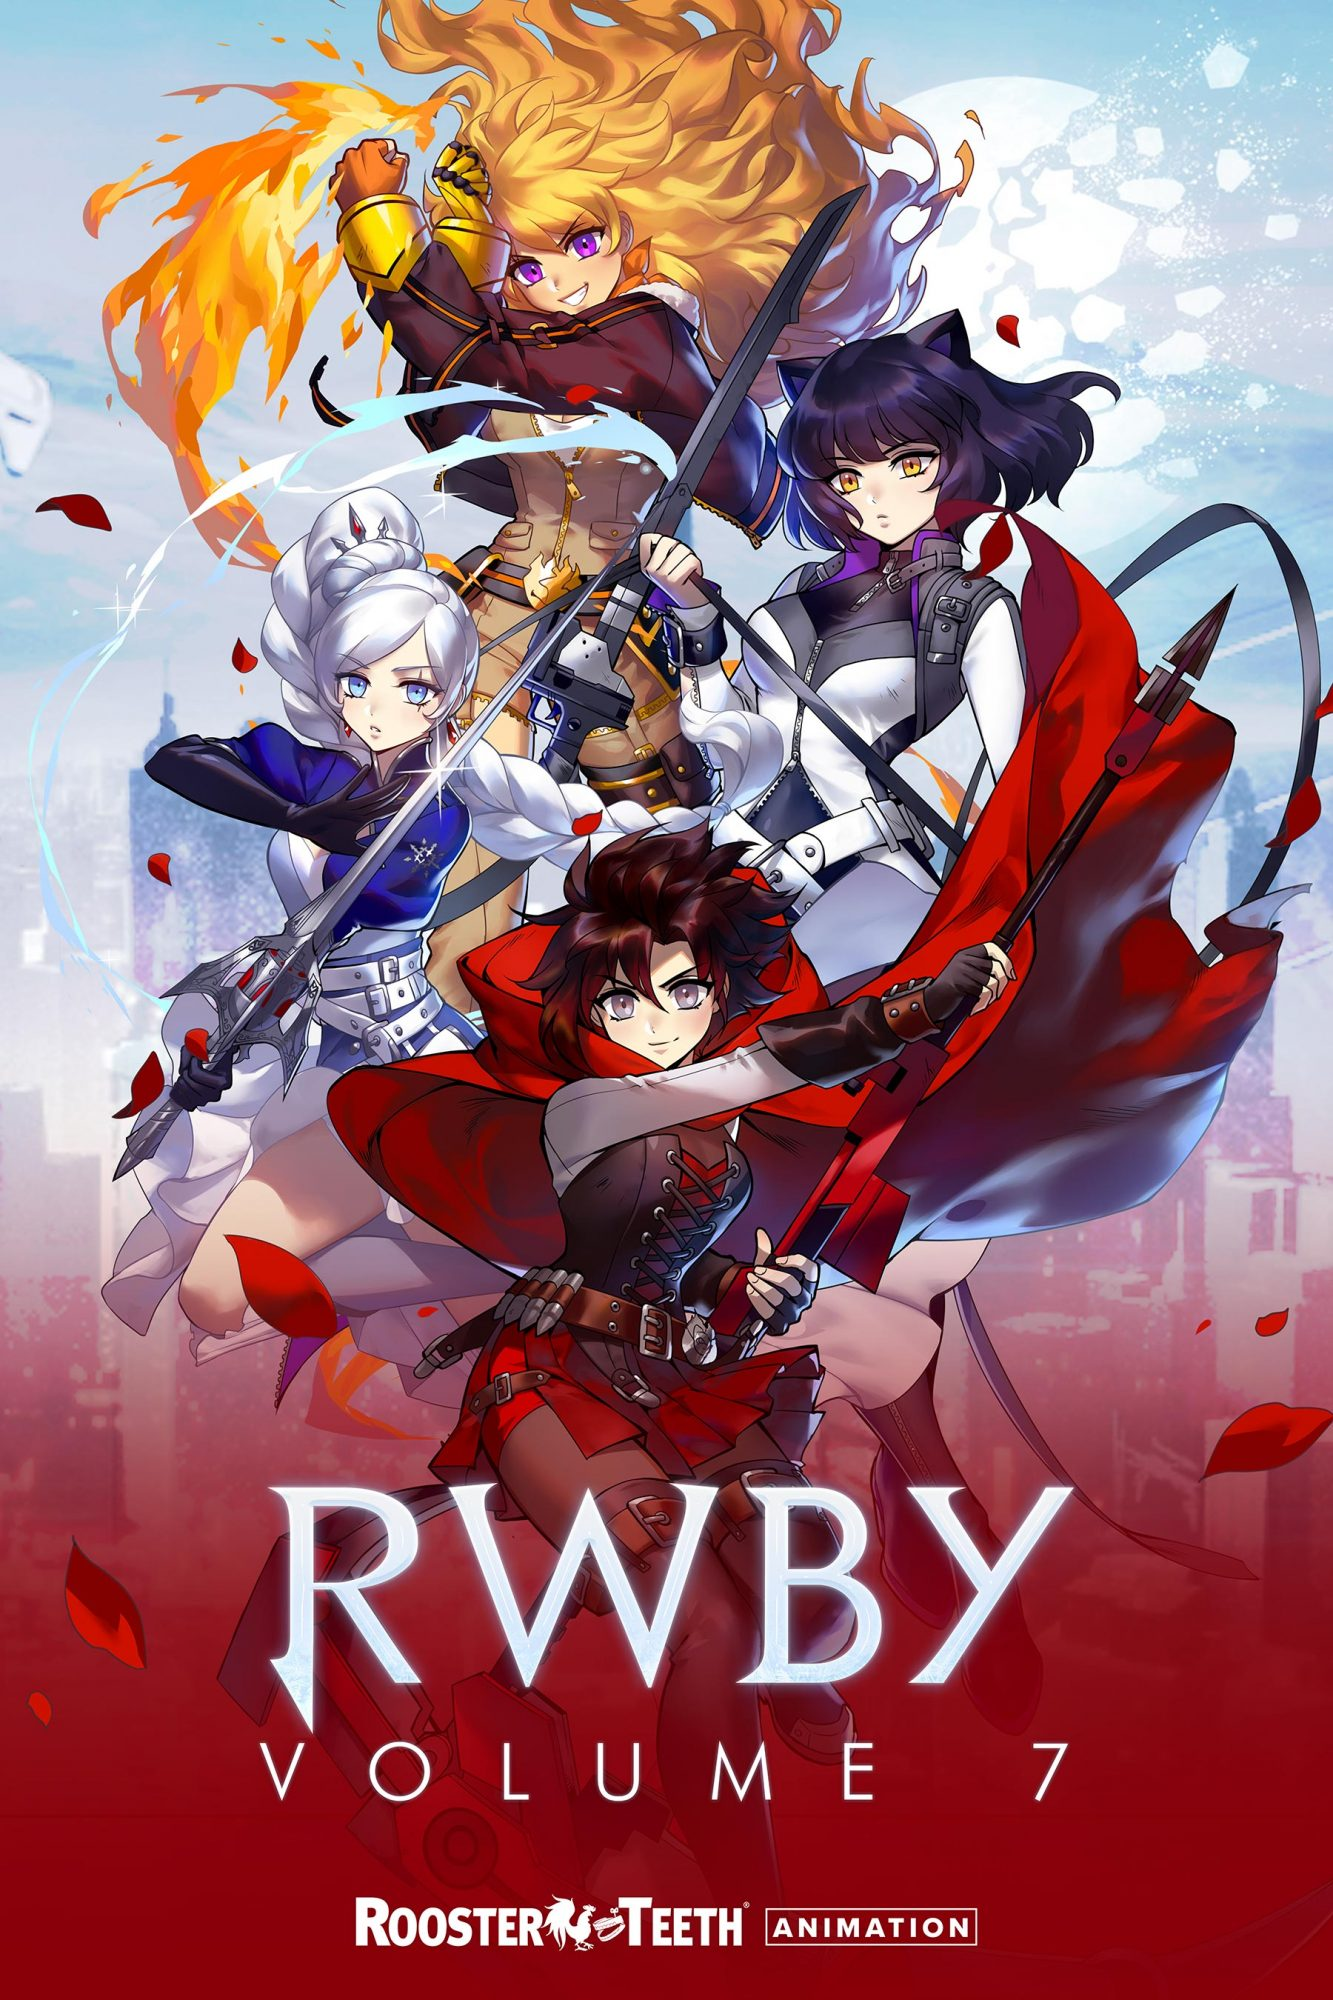 RWBY' Volume 7 key art CR: Rooster Teeth